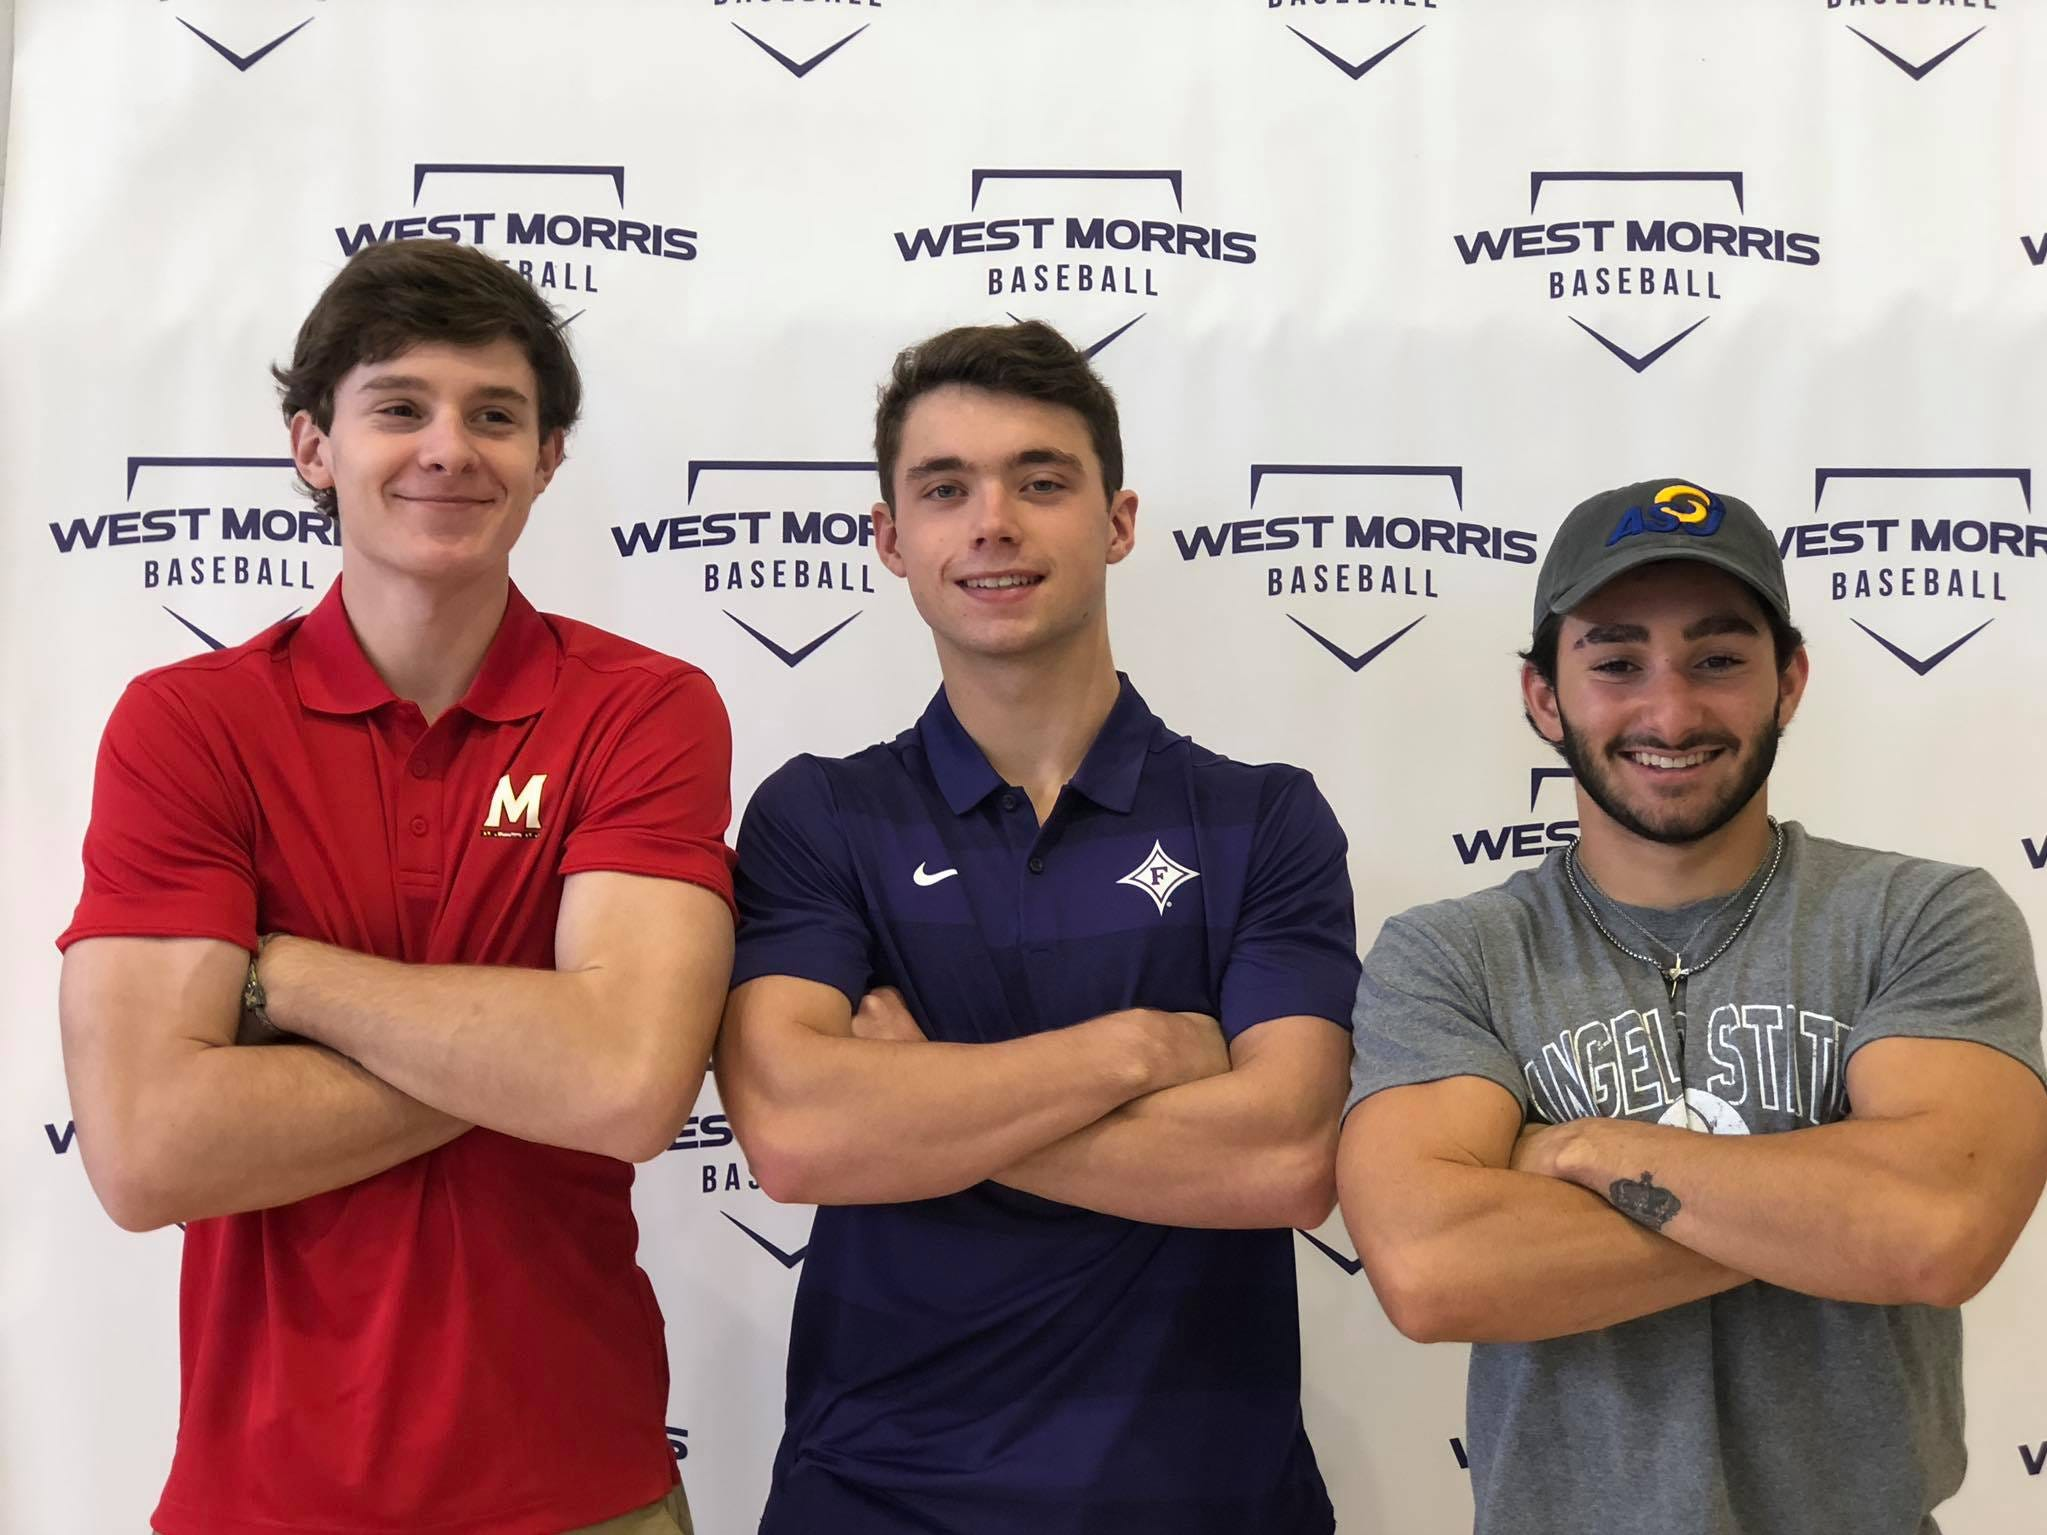 West Morris baseball players Connor Staine (Maryland), Aidan Healy (Furman) and Nick Calabrese (Angelo State) signed National Letters of Intent Wednesday.